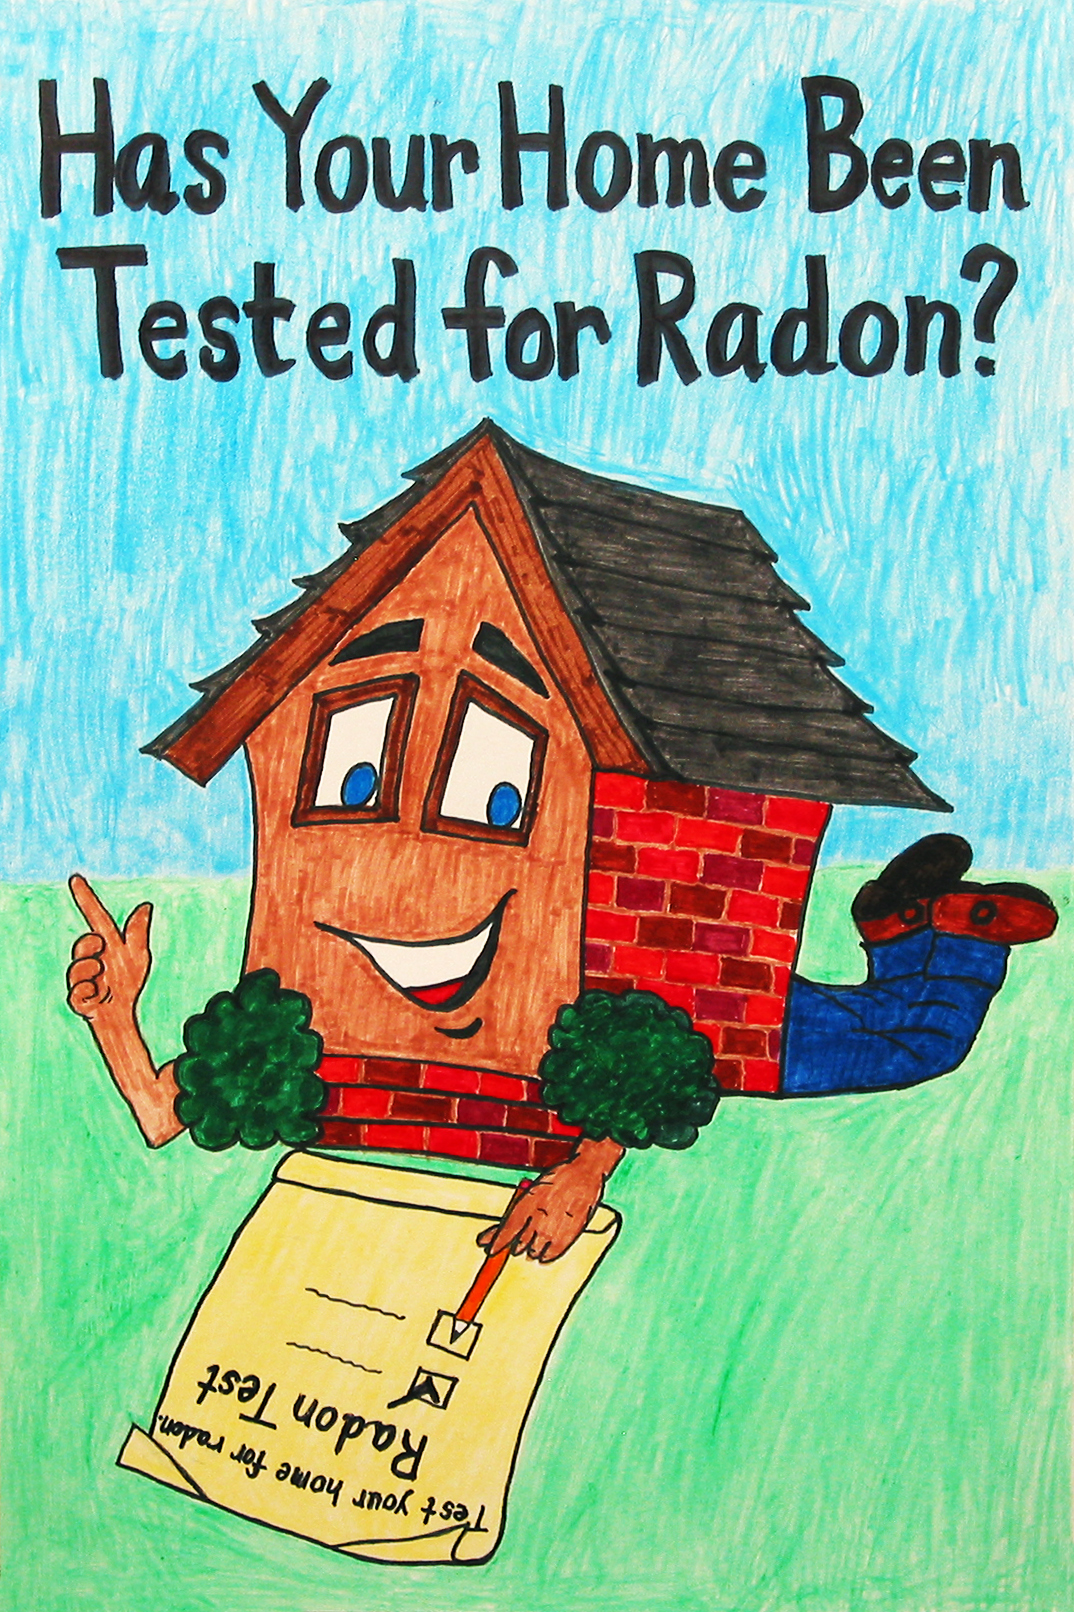 2012 Radon Poster Contest Winners Announced  National